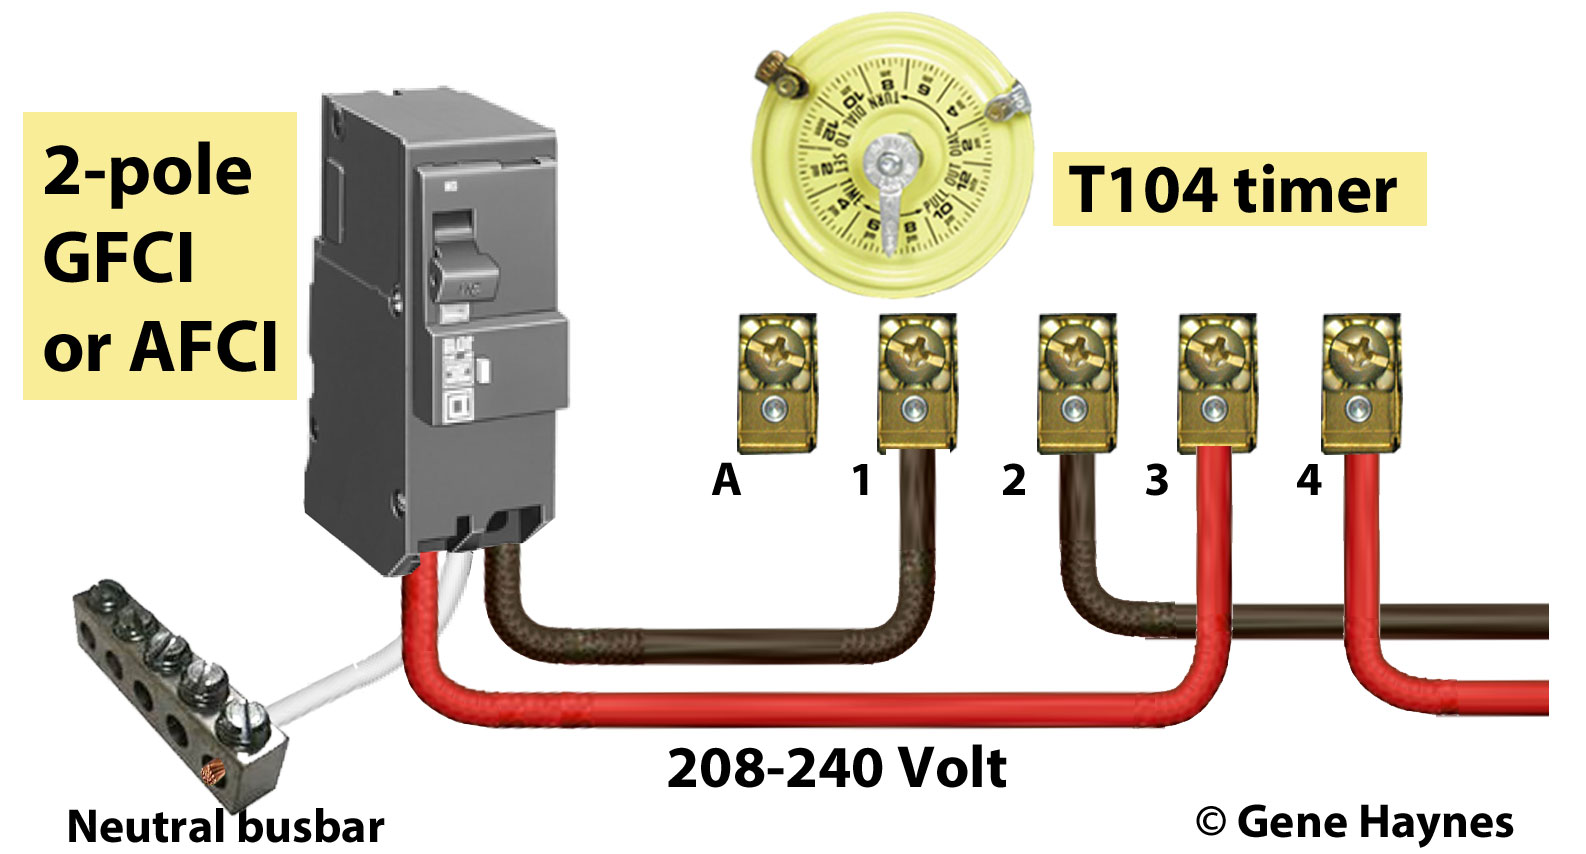 GFCI 2 pole breaker 800 how to install and troubleshoot gfci 2 pole gfci breaker wiring diagram at alyssarenee.co